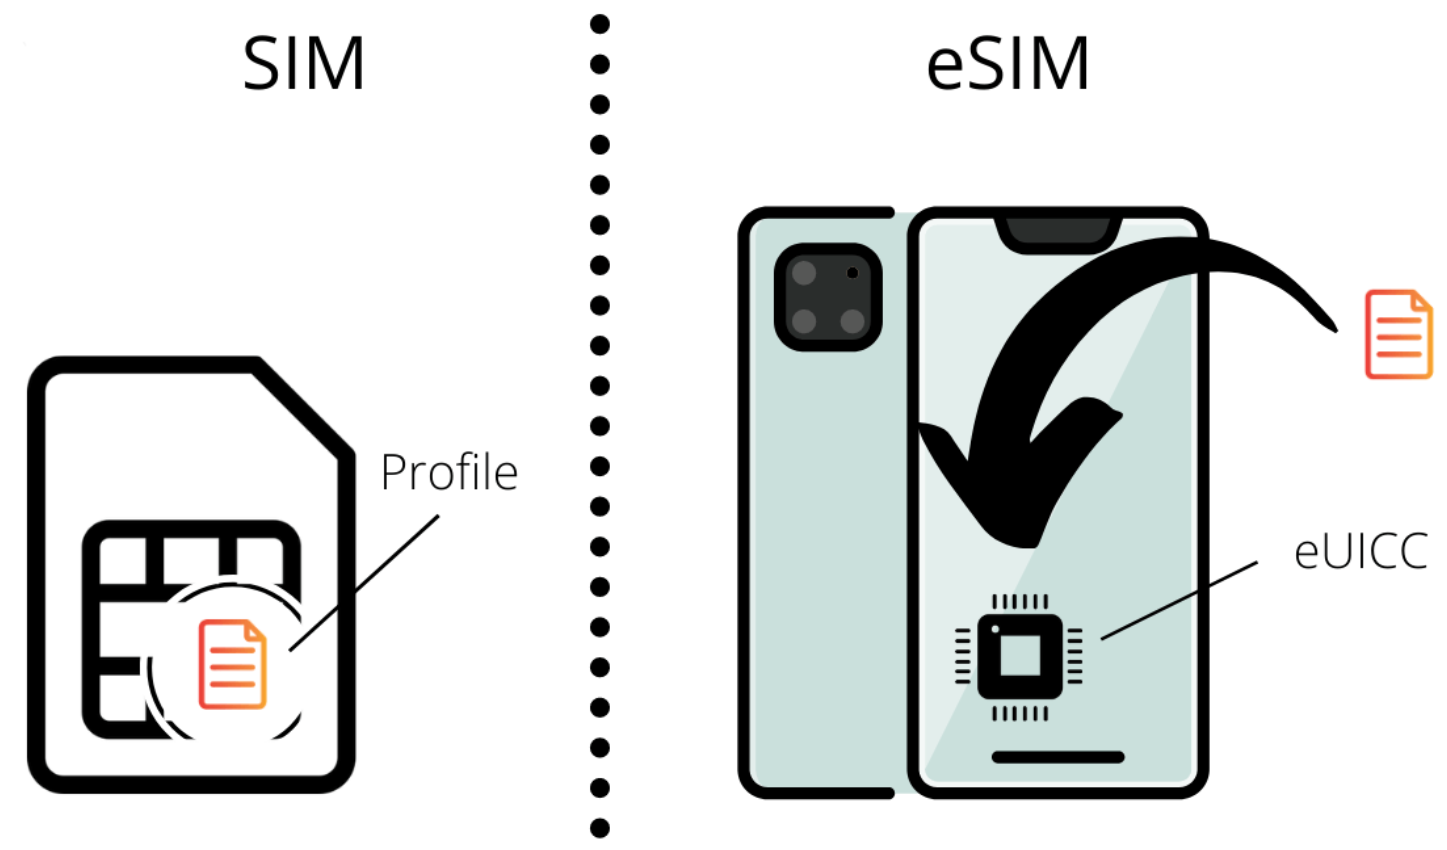 Difference between physical SIM and eSIM